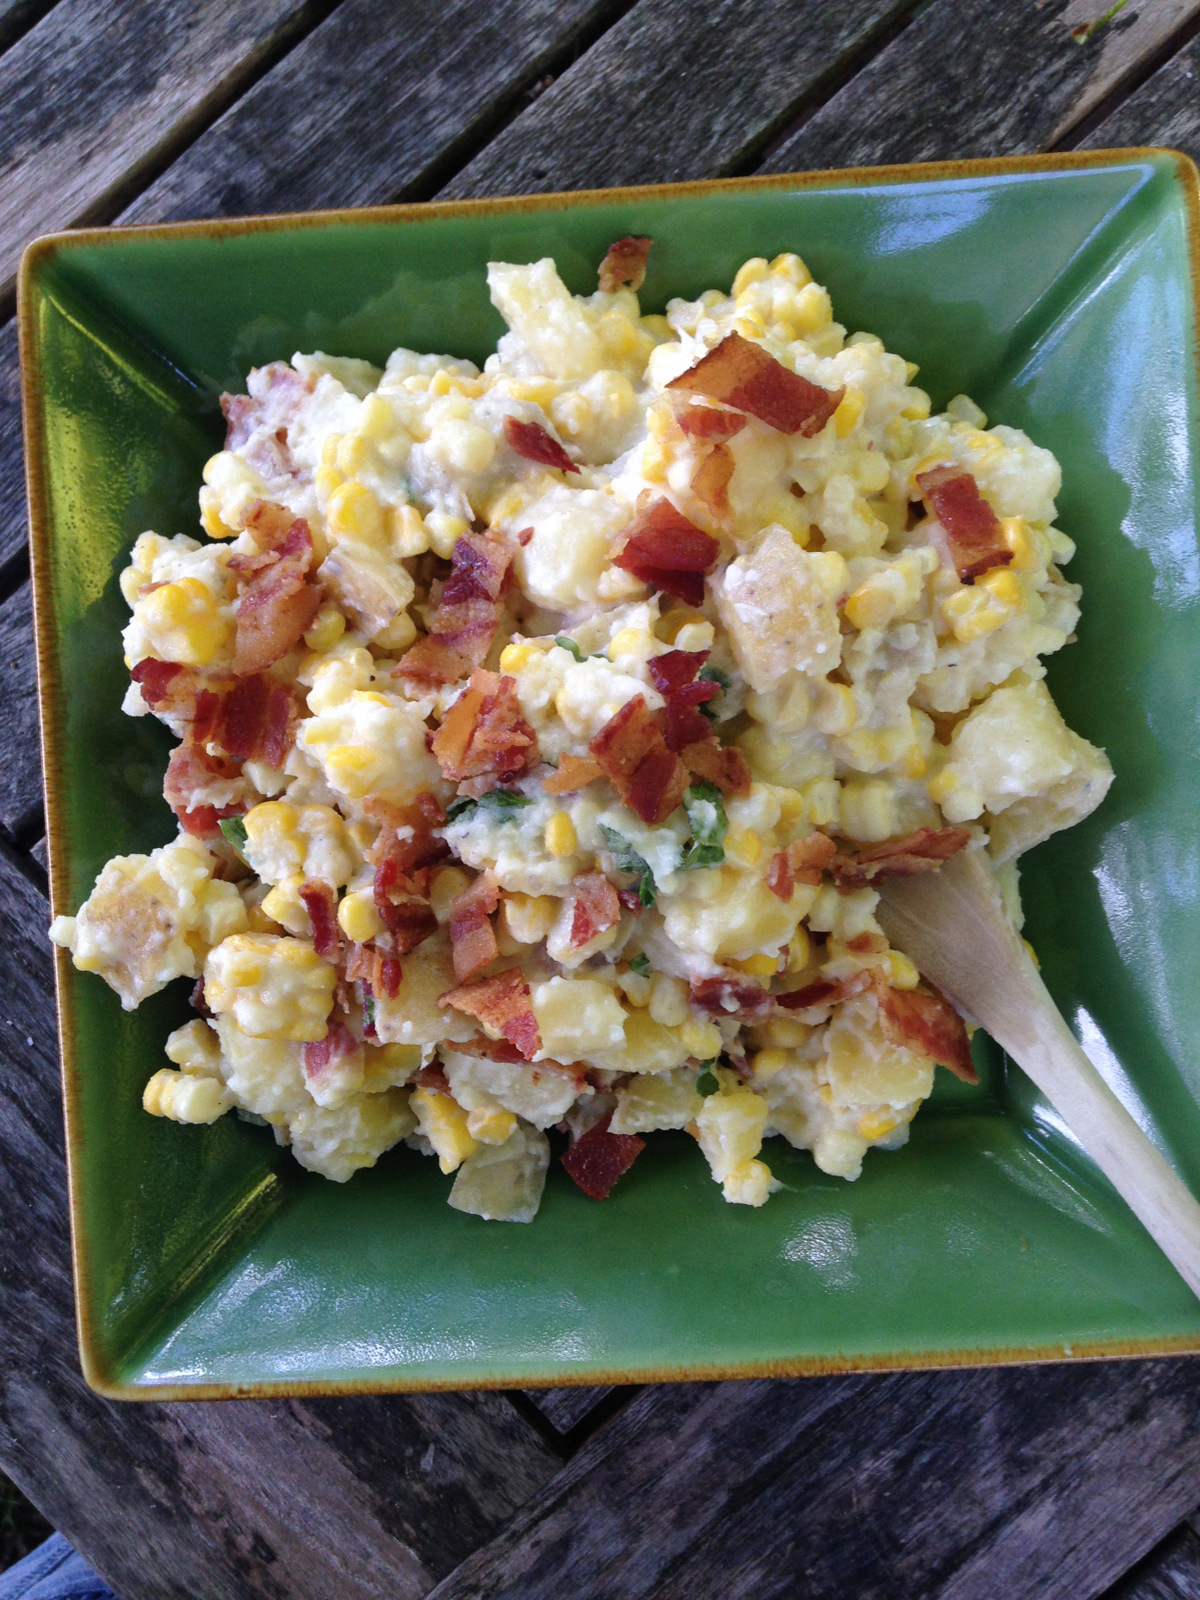 ... recipe that features corn is that fresh corn kernels are preferable